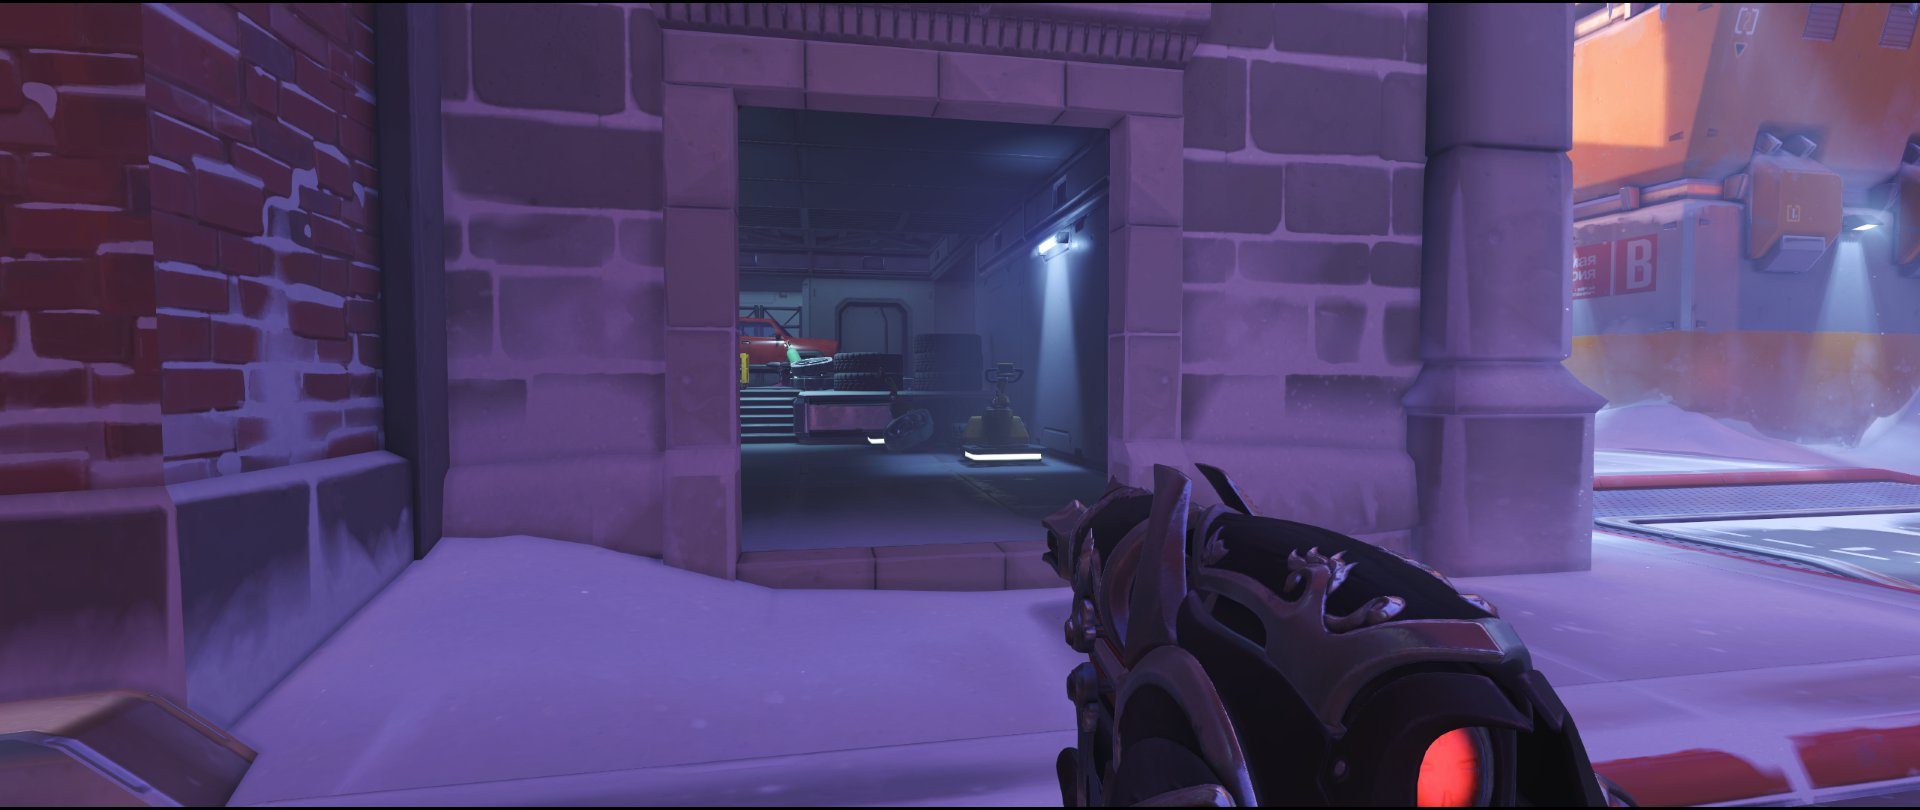 Garage attack sniping spot Widowmaker Volskaya Industries Overwatch.jpg